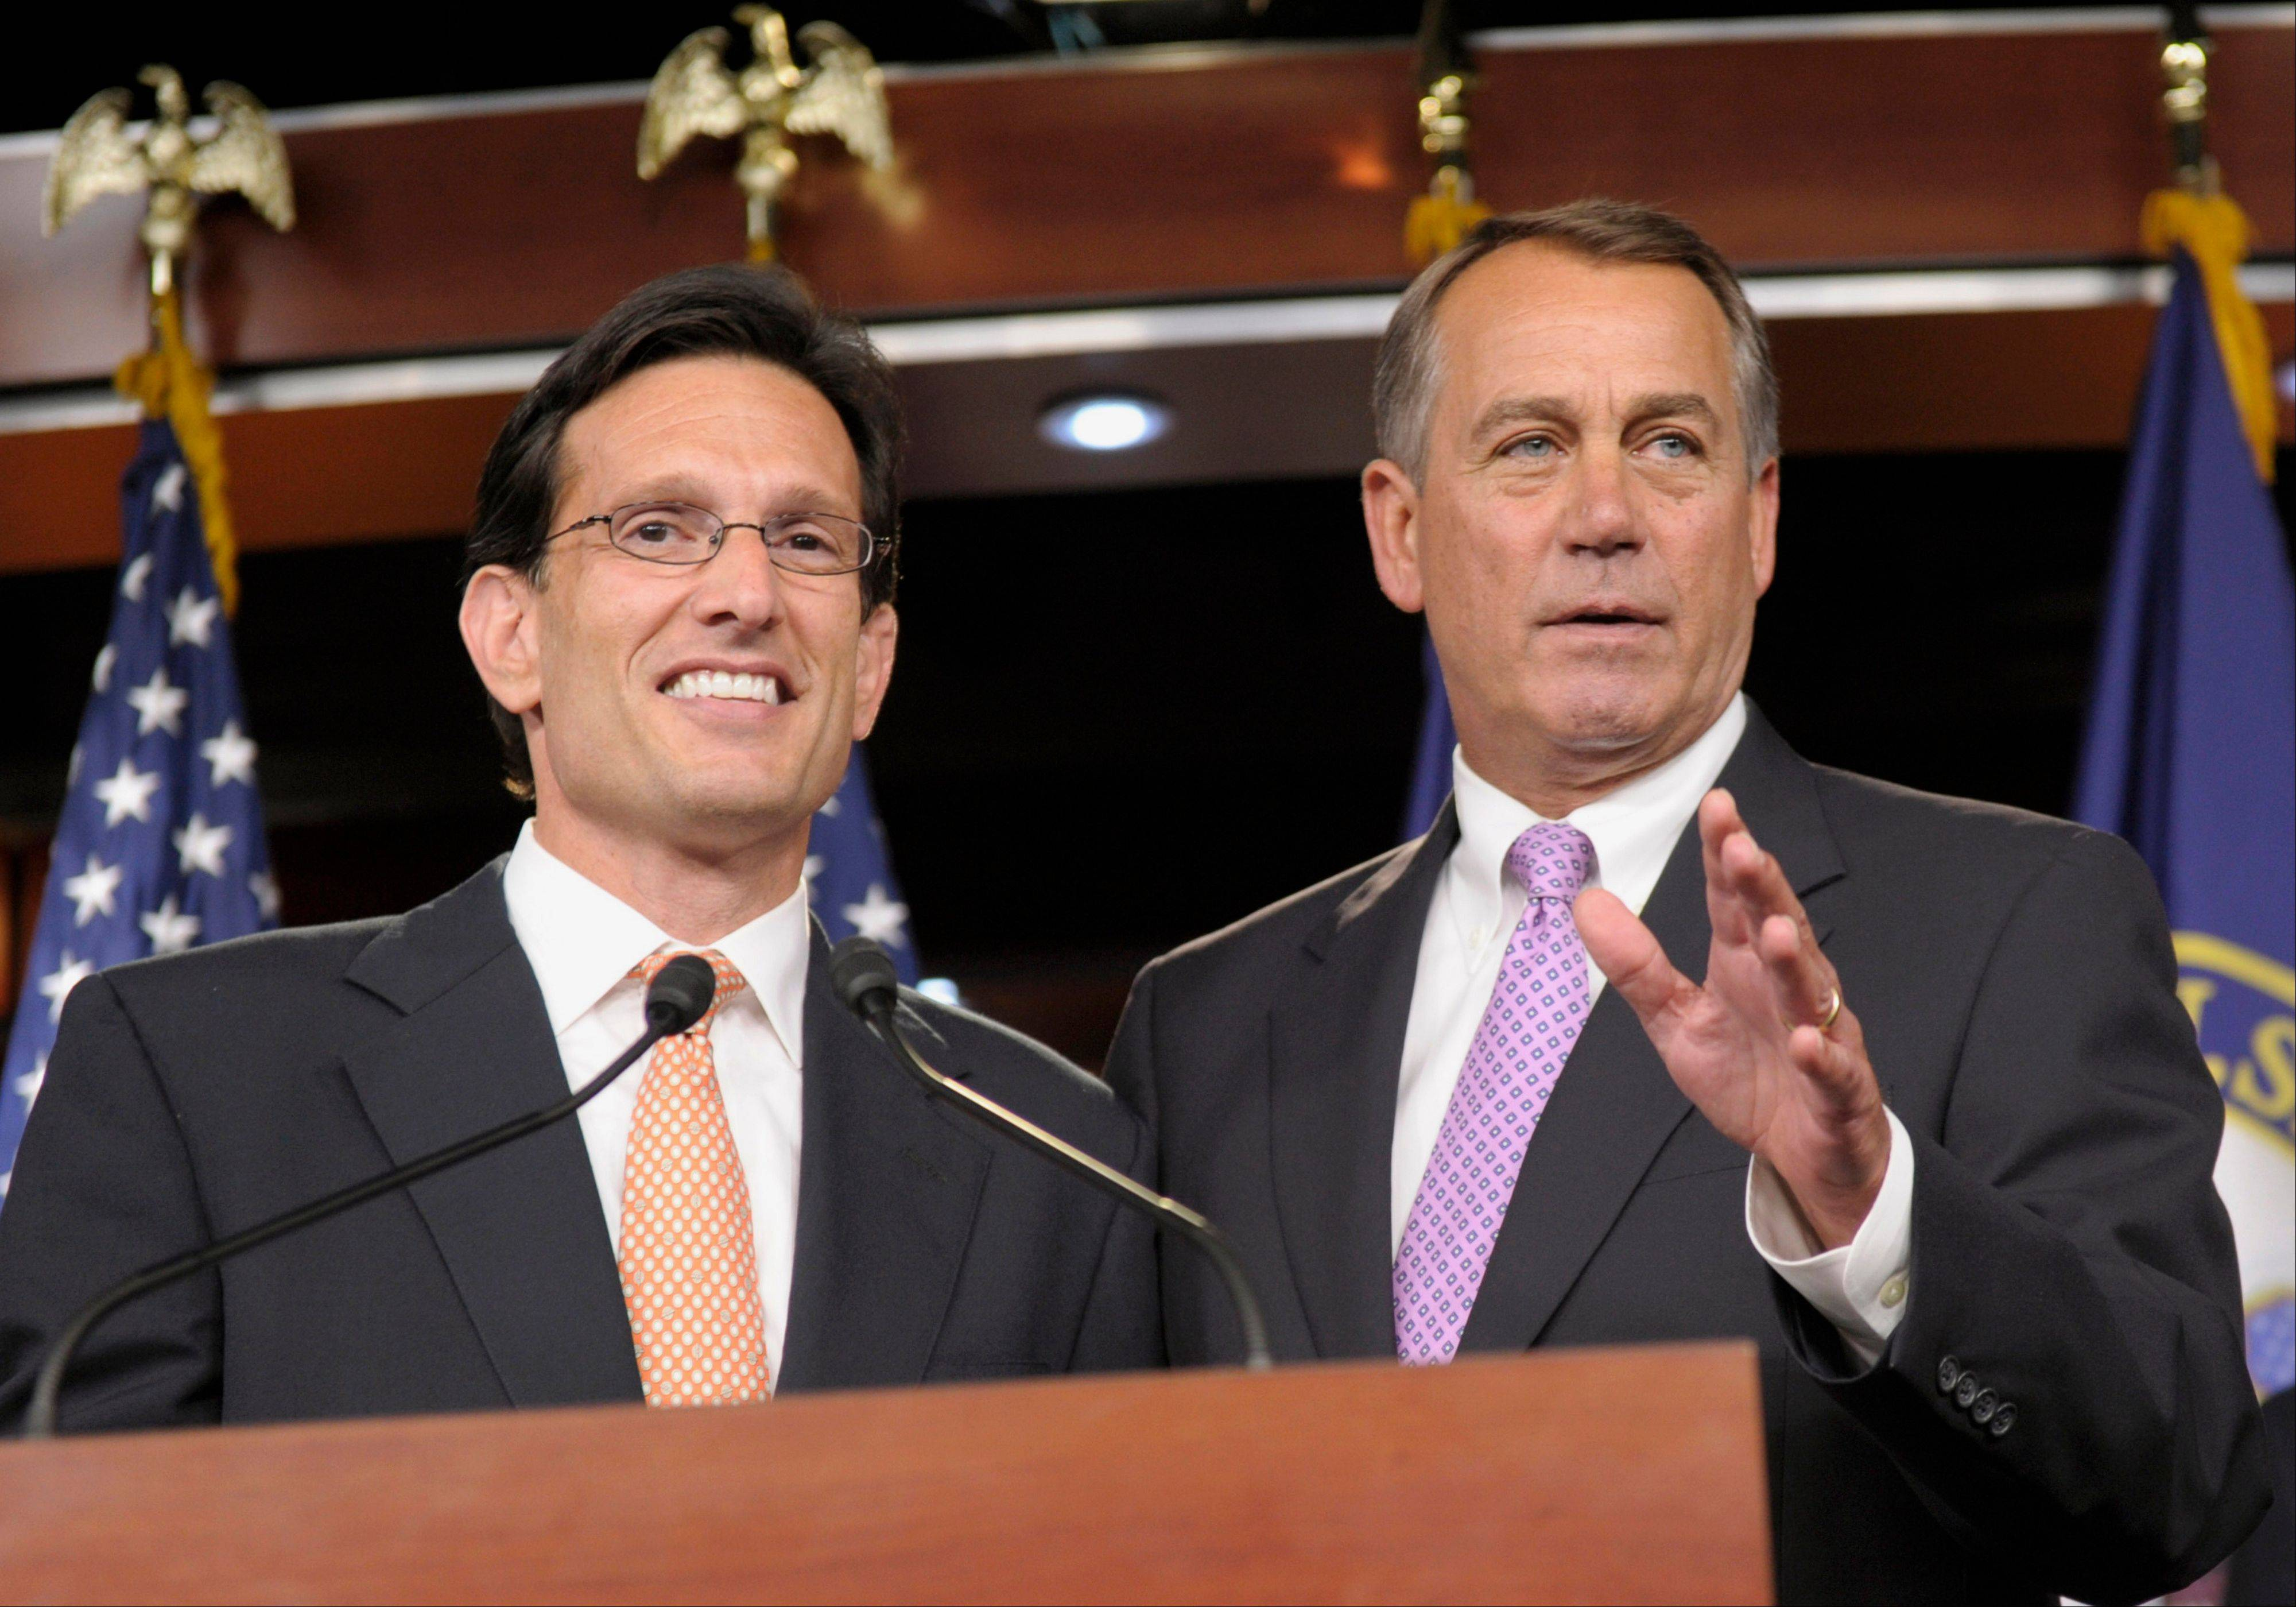 House Speaker John Boehner, right, and House Majority Leader Eric Cantor have sent President Barack Obama a letter seeking common ground in the effort to stimulate job growth.